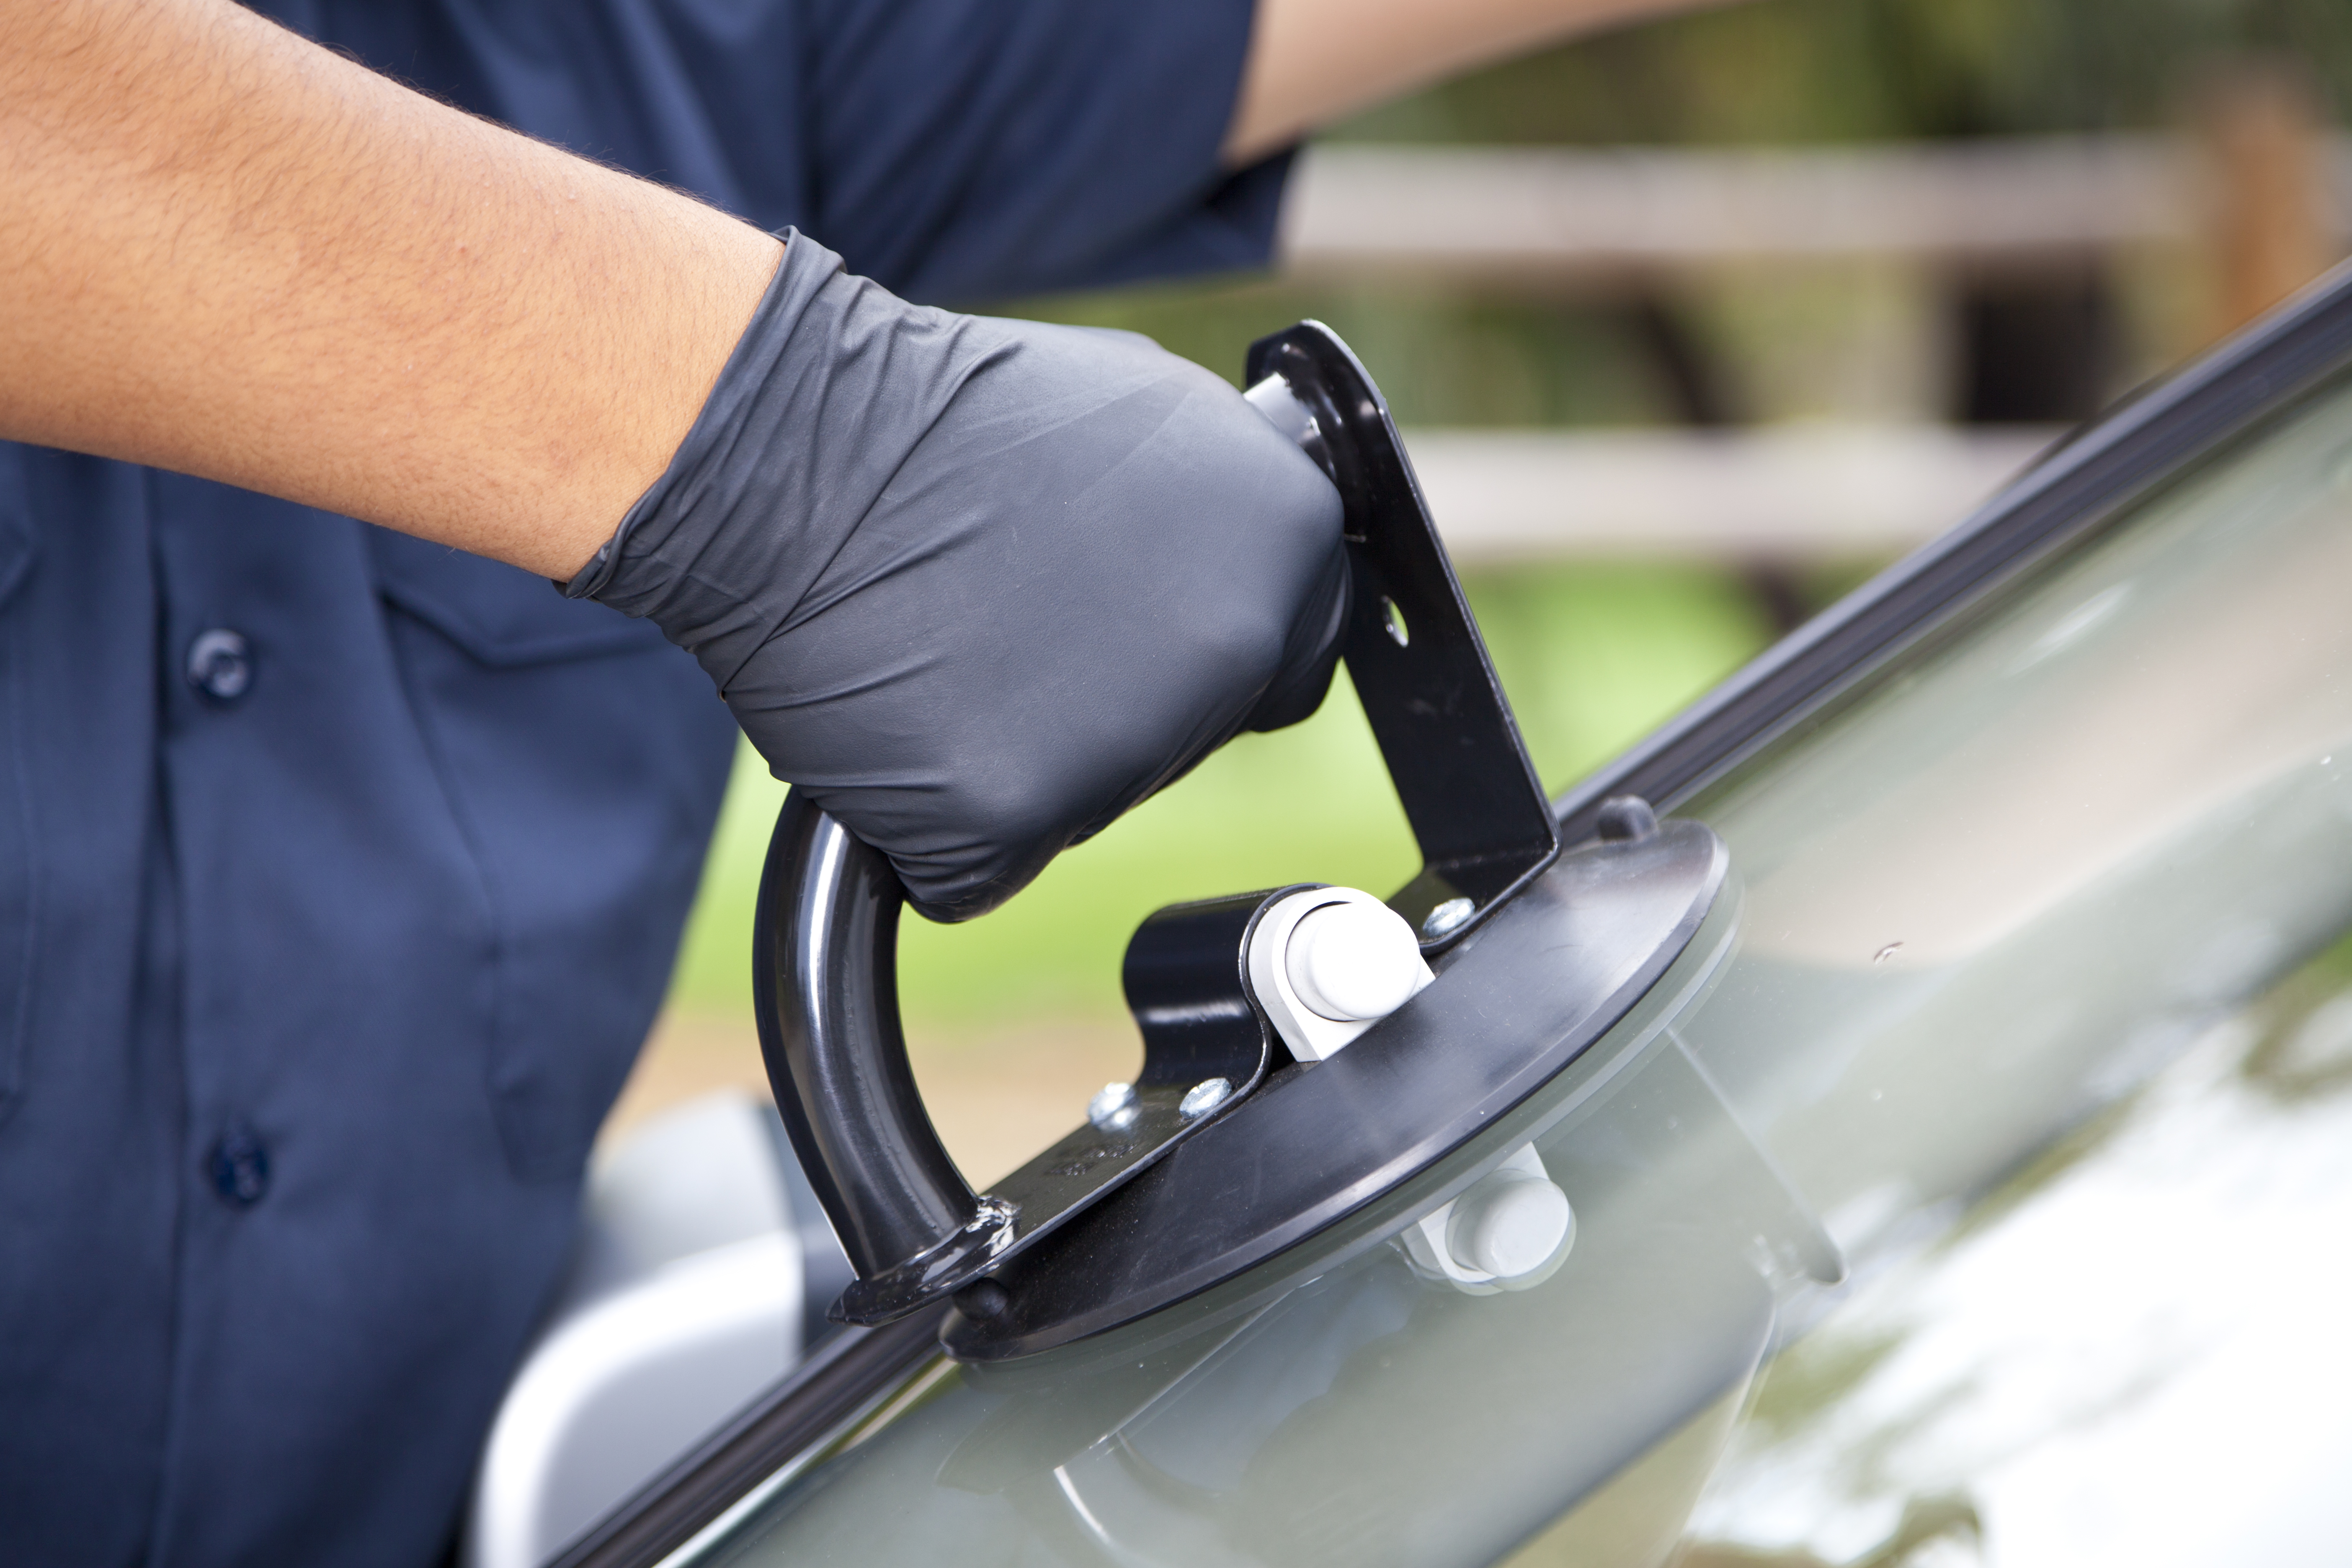 Windshield replacement or repair services